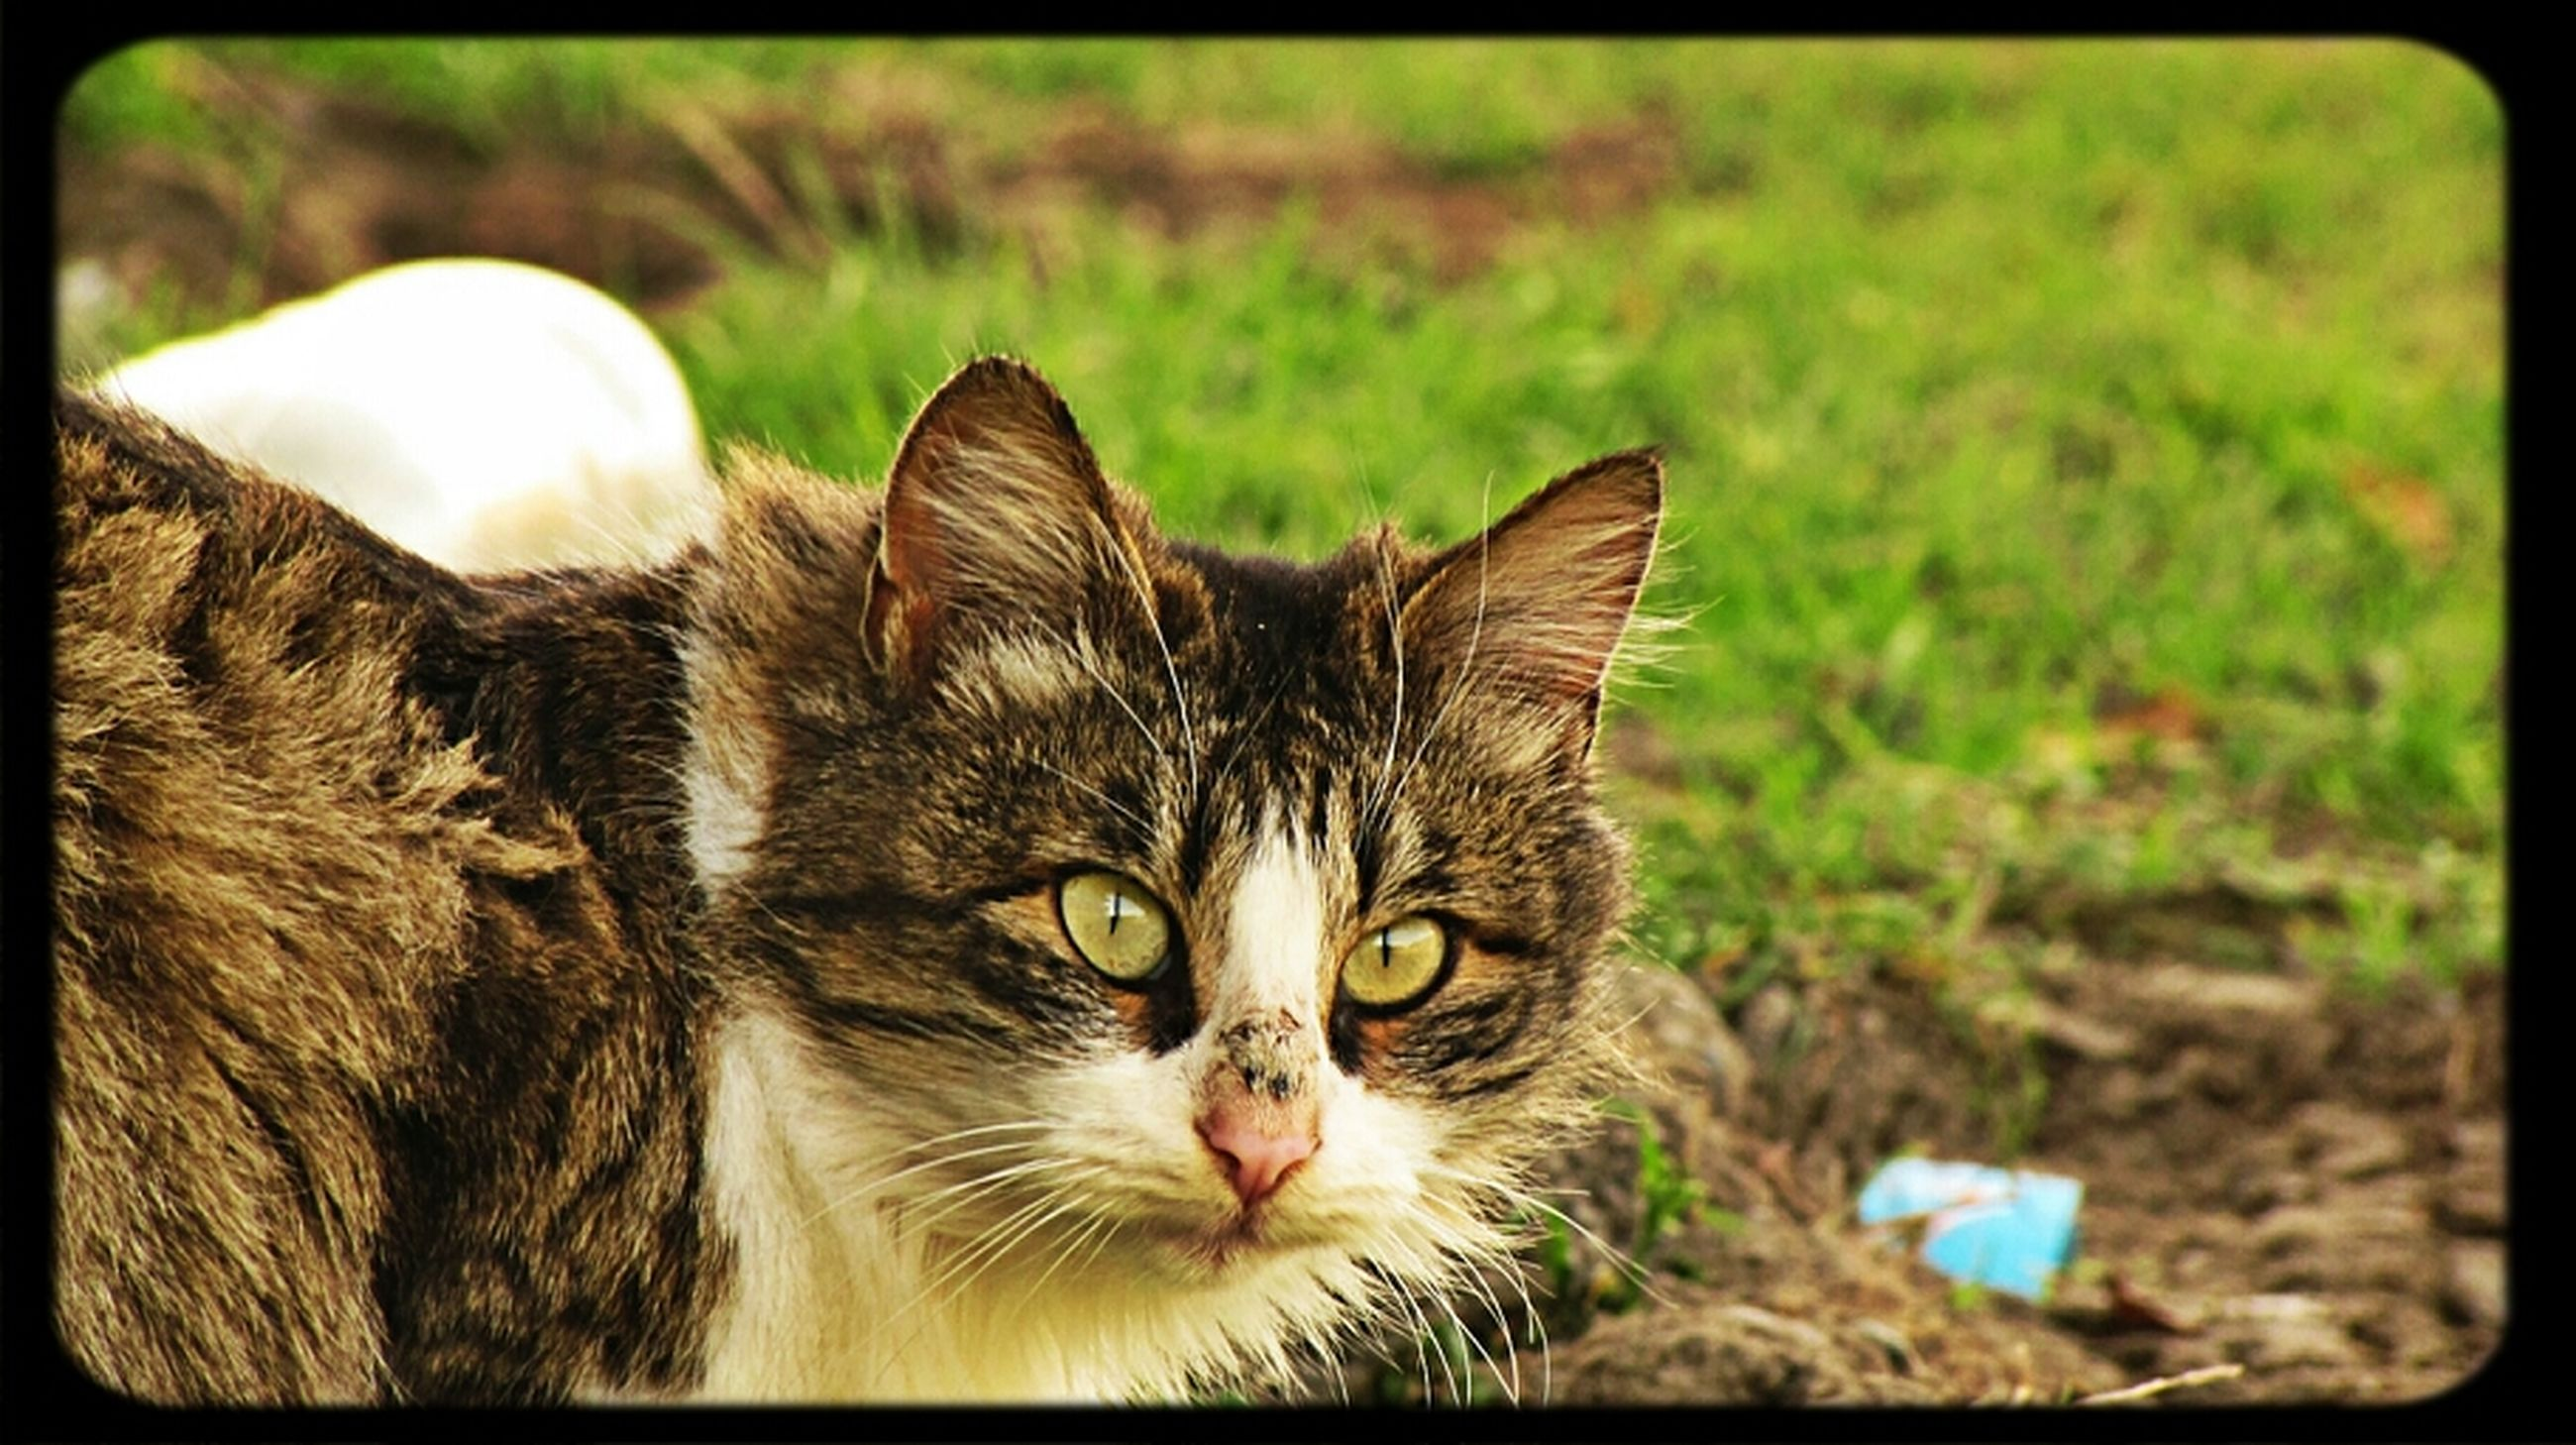 domestic cat, pets, cat, one animal, animal themes, transfer print, domestic animals, feline, mammal, portrait, whisker, auto post production filter, looking at camera, close-up, relaxation, focus on foreground, animal head, staring, alertness, front view